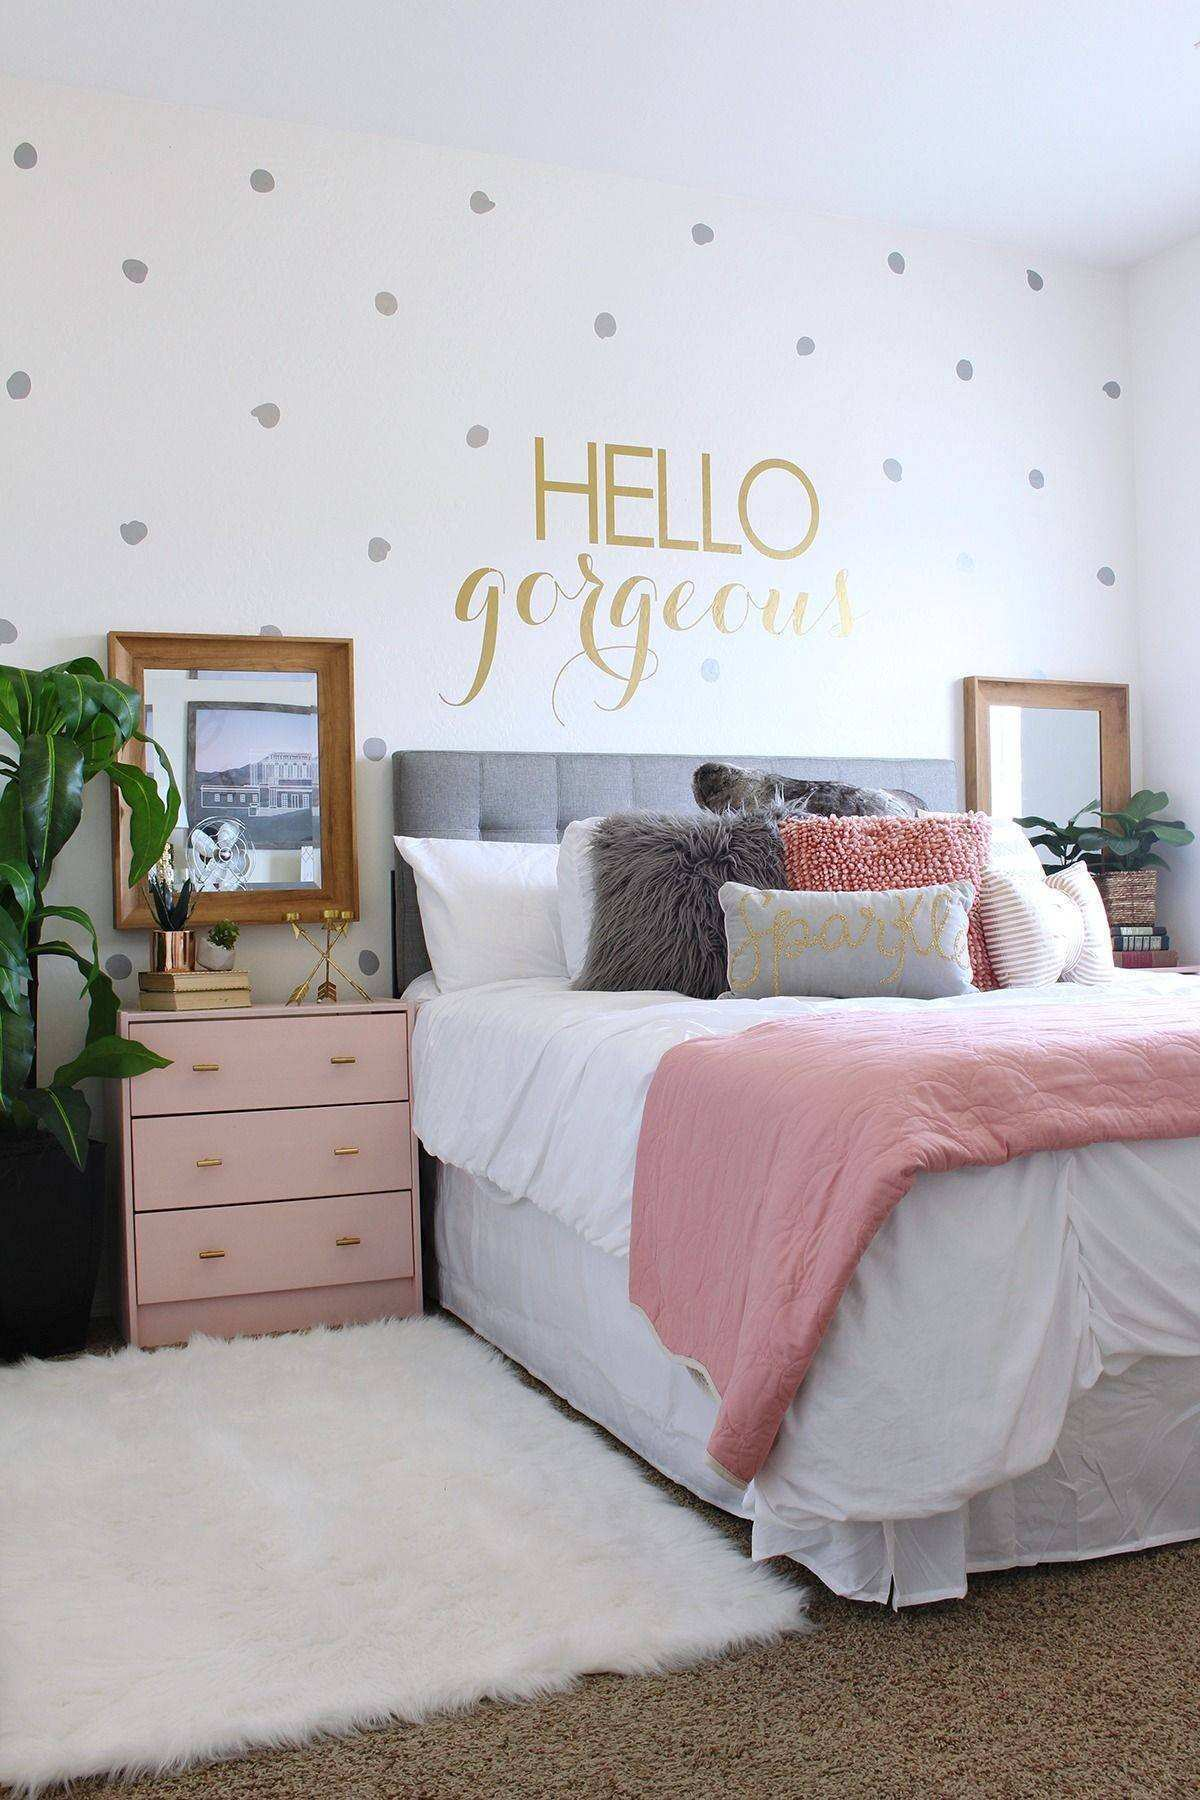 52 Awesome Wall Decor Teenage Girl Bedroom